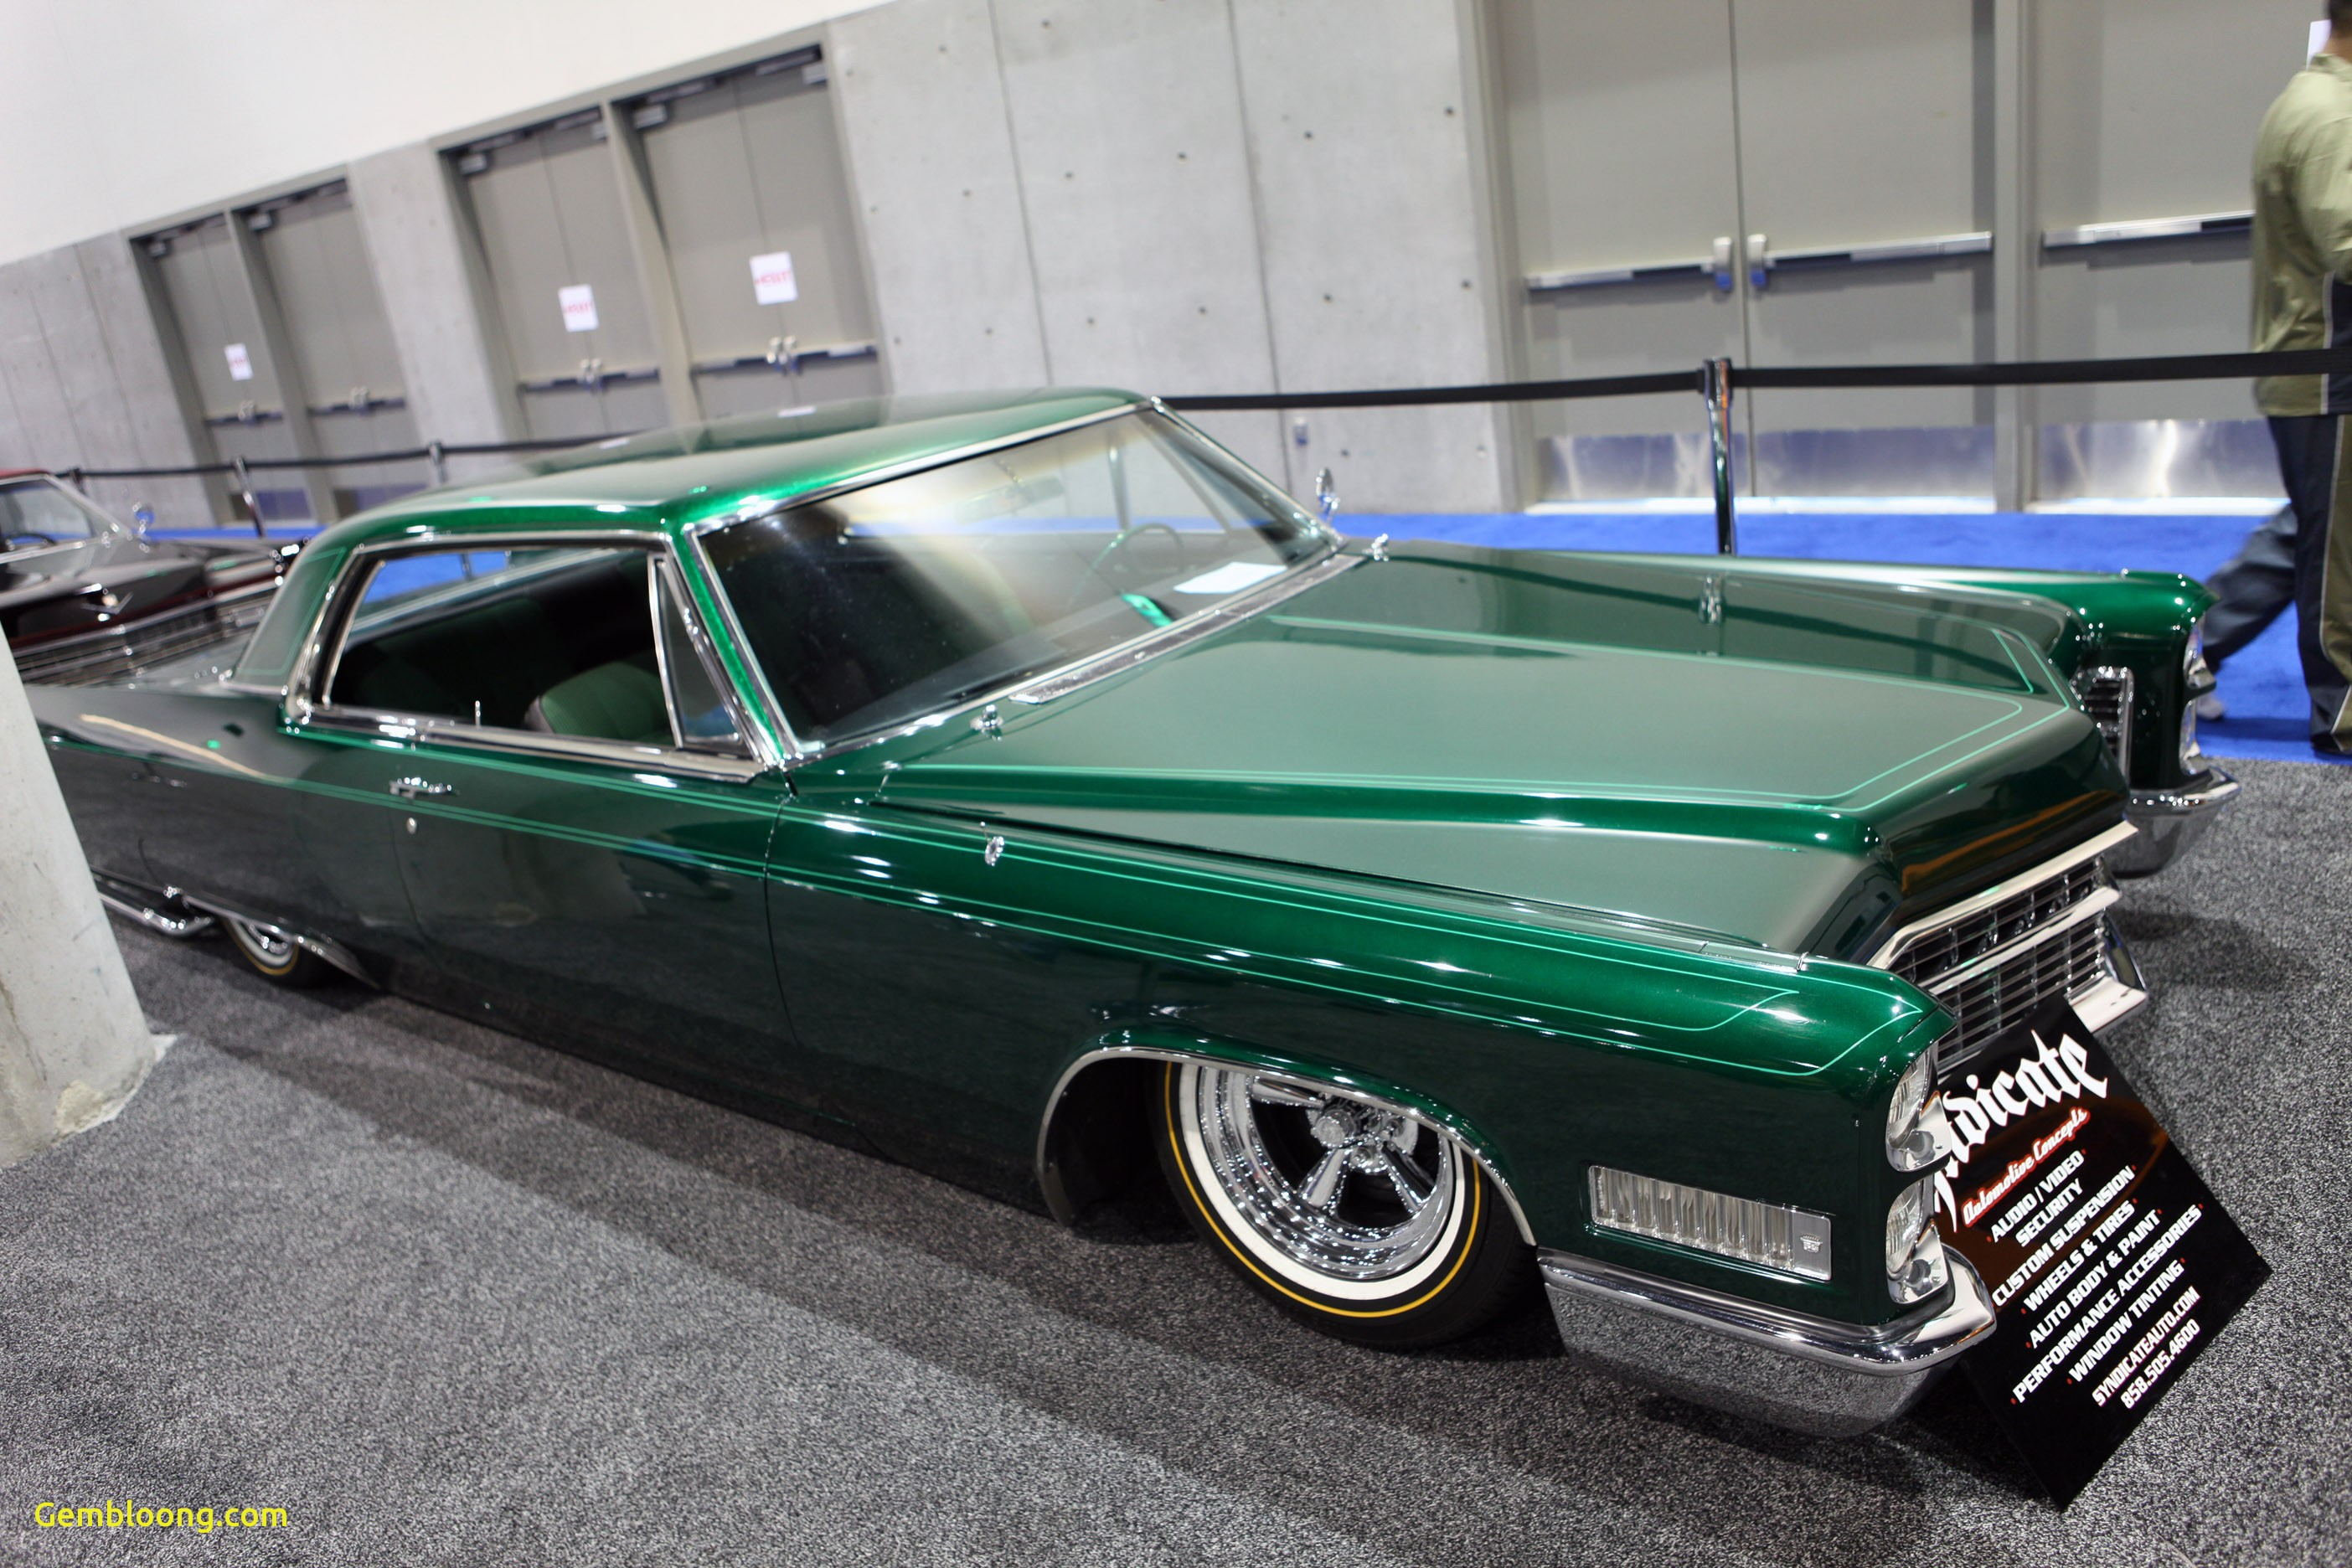 Muscle Cars for Sale Near Me Cheap Lovely Fresh Classic Cars for Sale Near Me